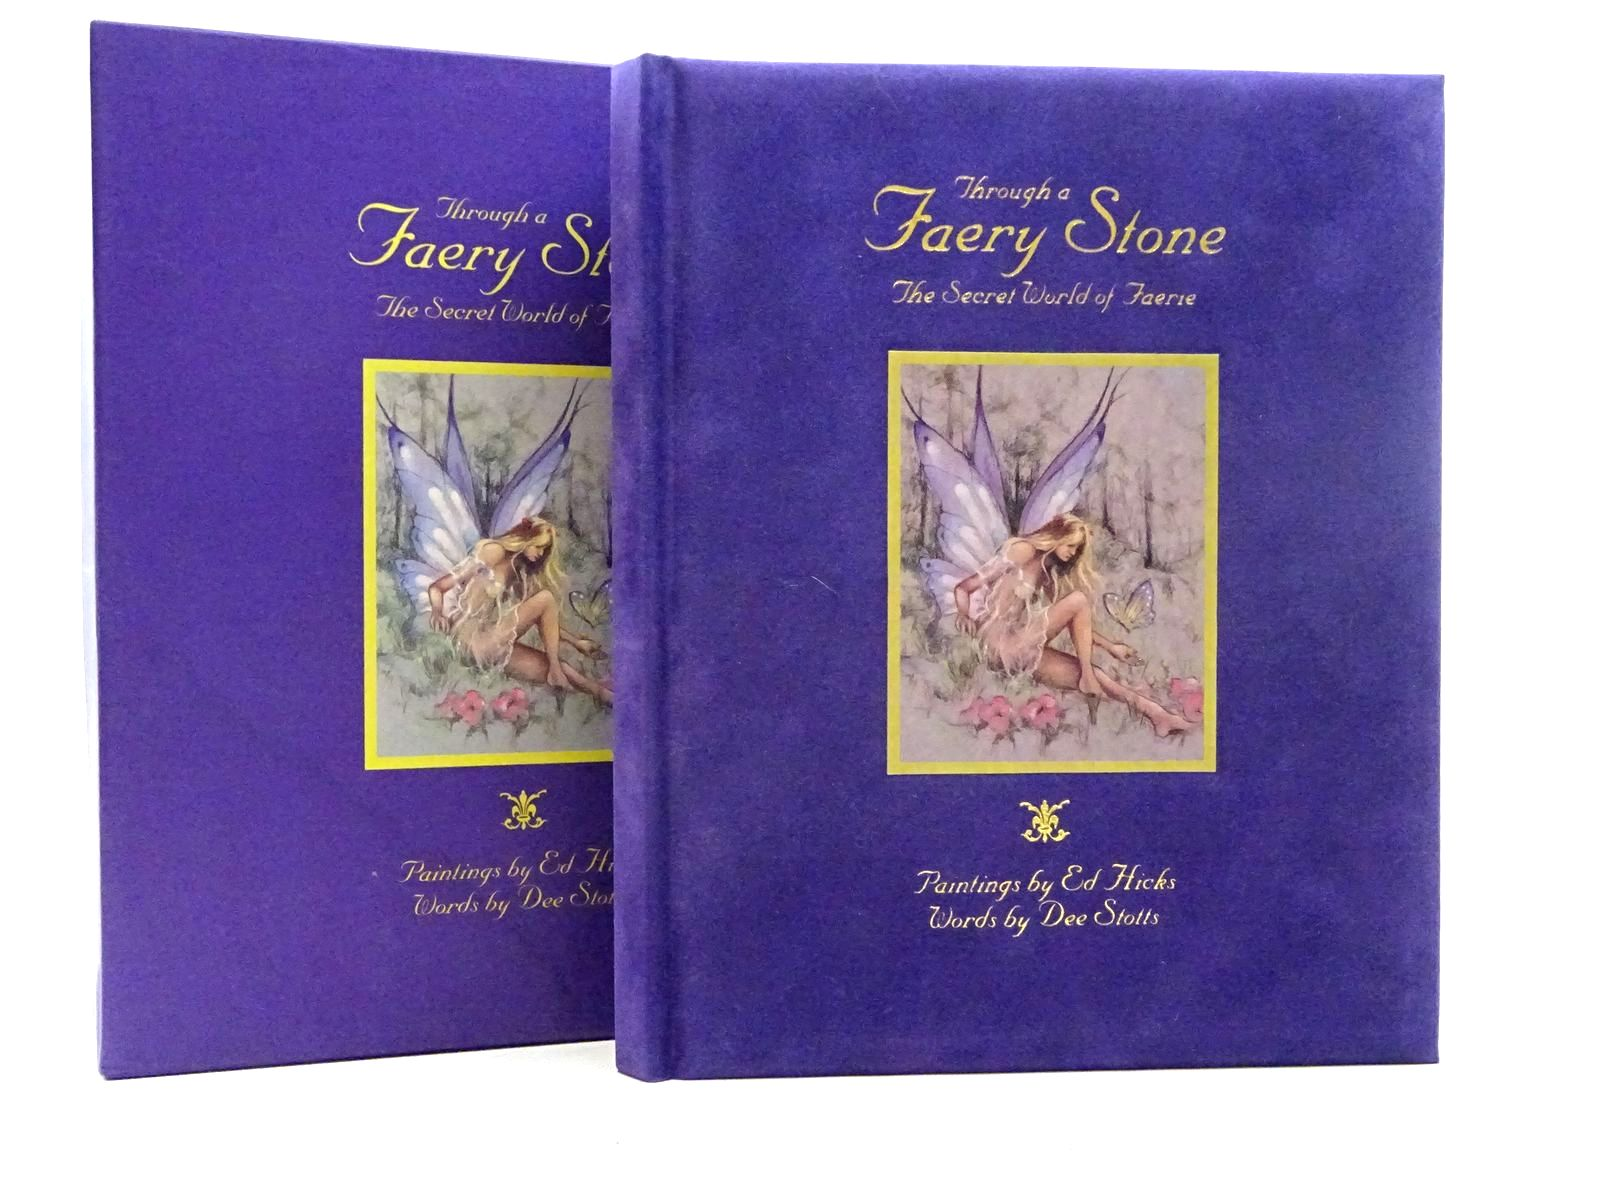 Photo of THROUGH A FAERY STONE THE SECRET WORLD OF THE FAERIE written by Stotts, Dee illustrated by Hicks, Ed. published by Aappl Artists' and Photographers' press Ltd. (STOCK CODE: 2125919)  for sale by Stella & Rose's Books